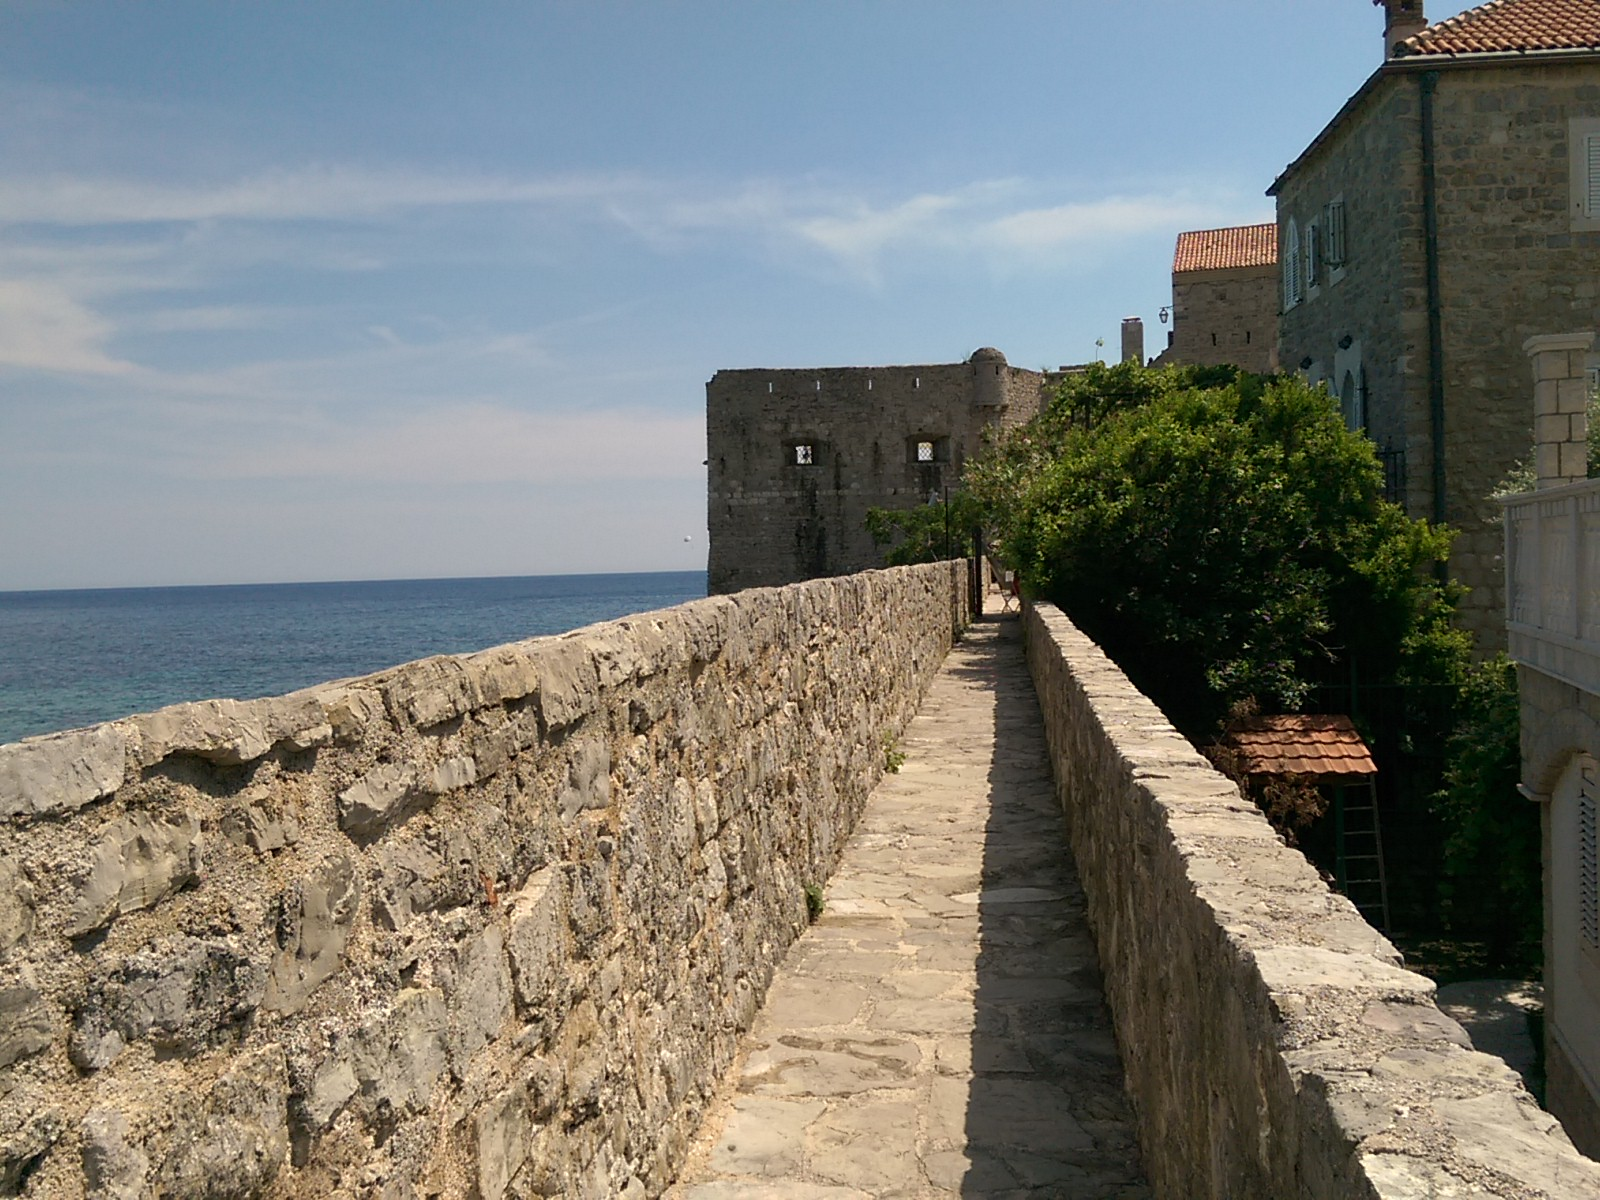 Narrow city wall walkway stretches into the distance, with sea to the left and stone houses to the right